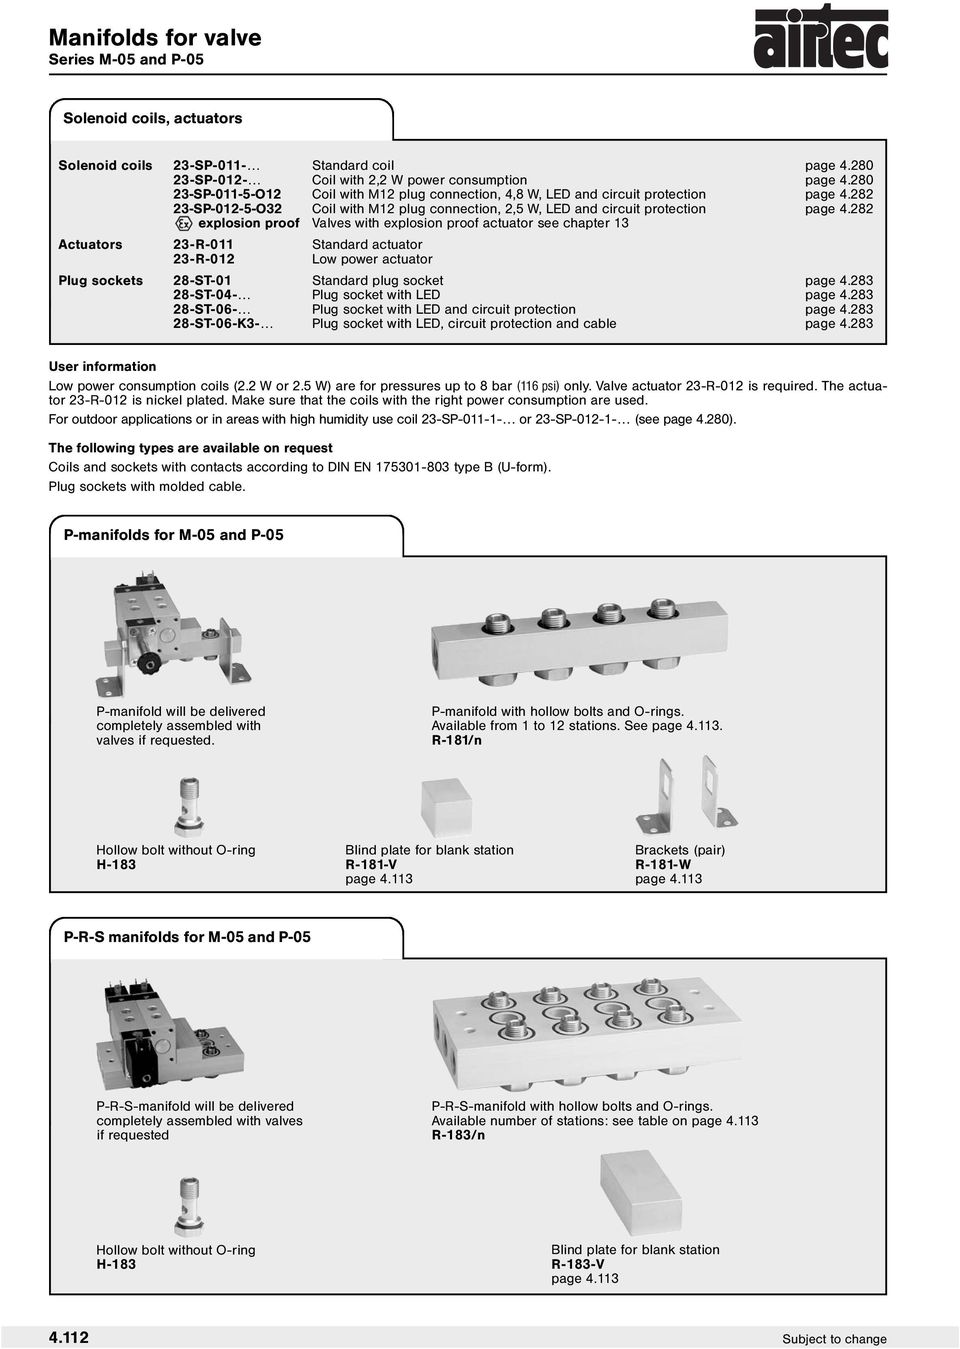 282 explosion proof Valves with explosion proof actuator see chapter 13 Actuators 23-R-011 Standard actuator 23-R-012 Low power actuator Plug sockets 28-ST-01 Standard plug socket page 4.